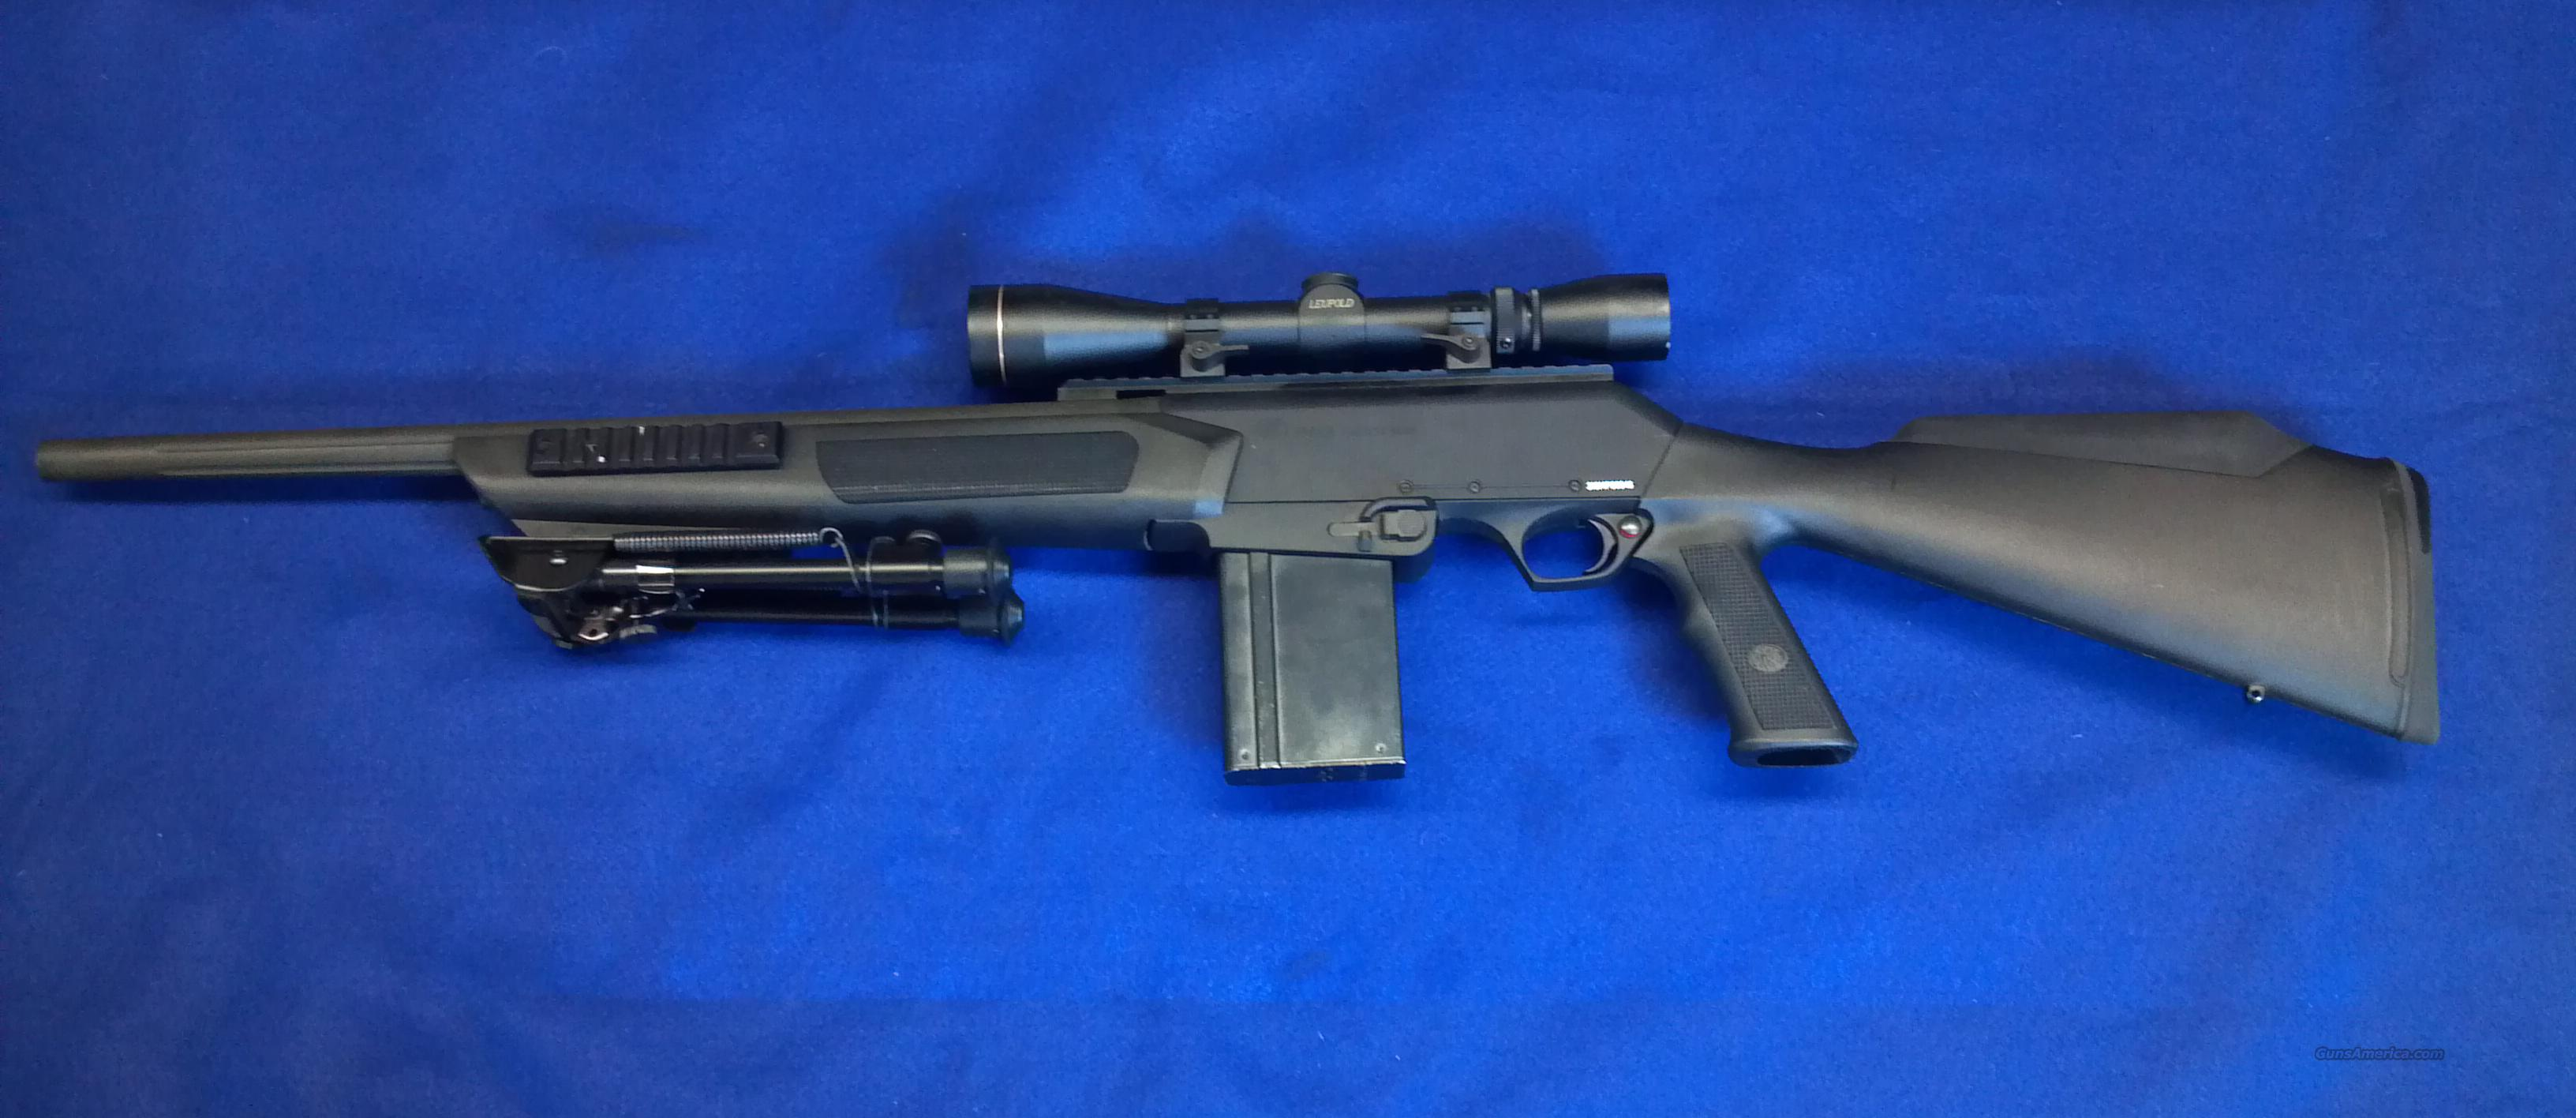 FNH FNAR .308 with accessories  Guns > Rifles > FNH - Fabrique Nationale (FN) Rifles > Semi-auto > Other